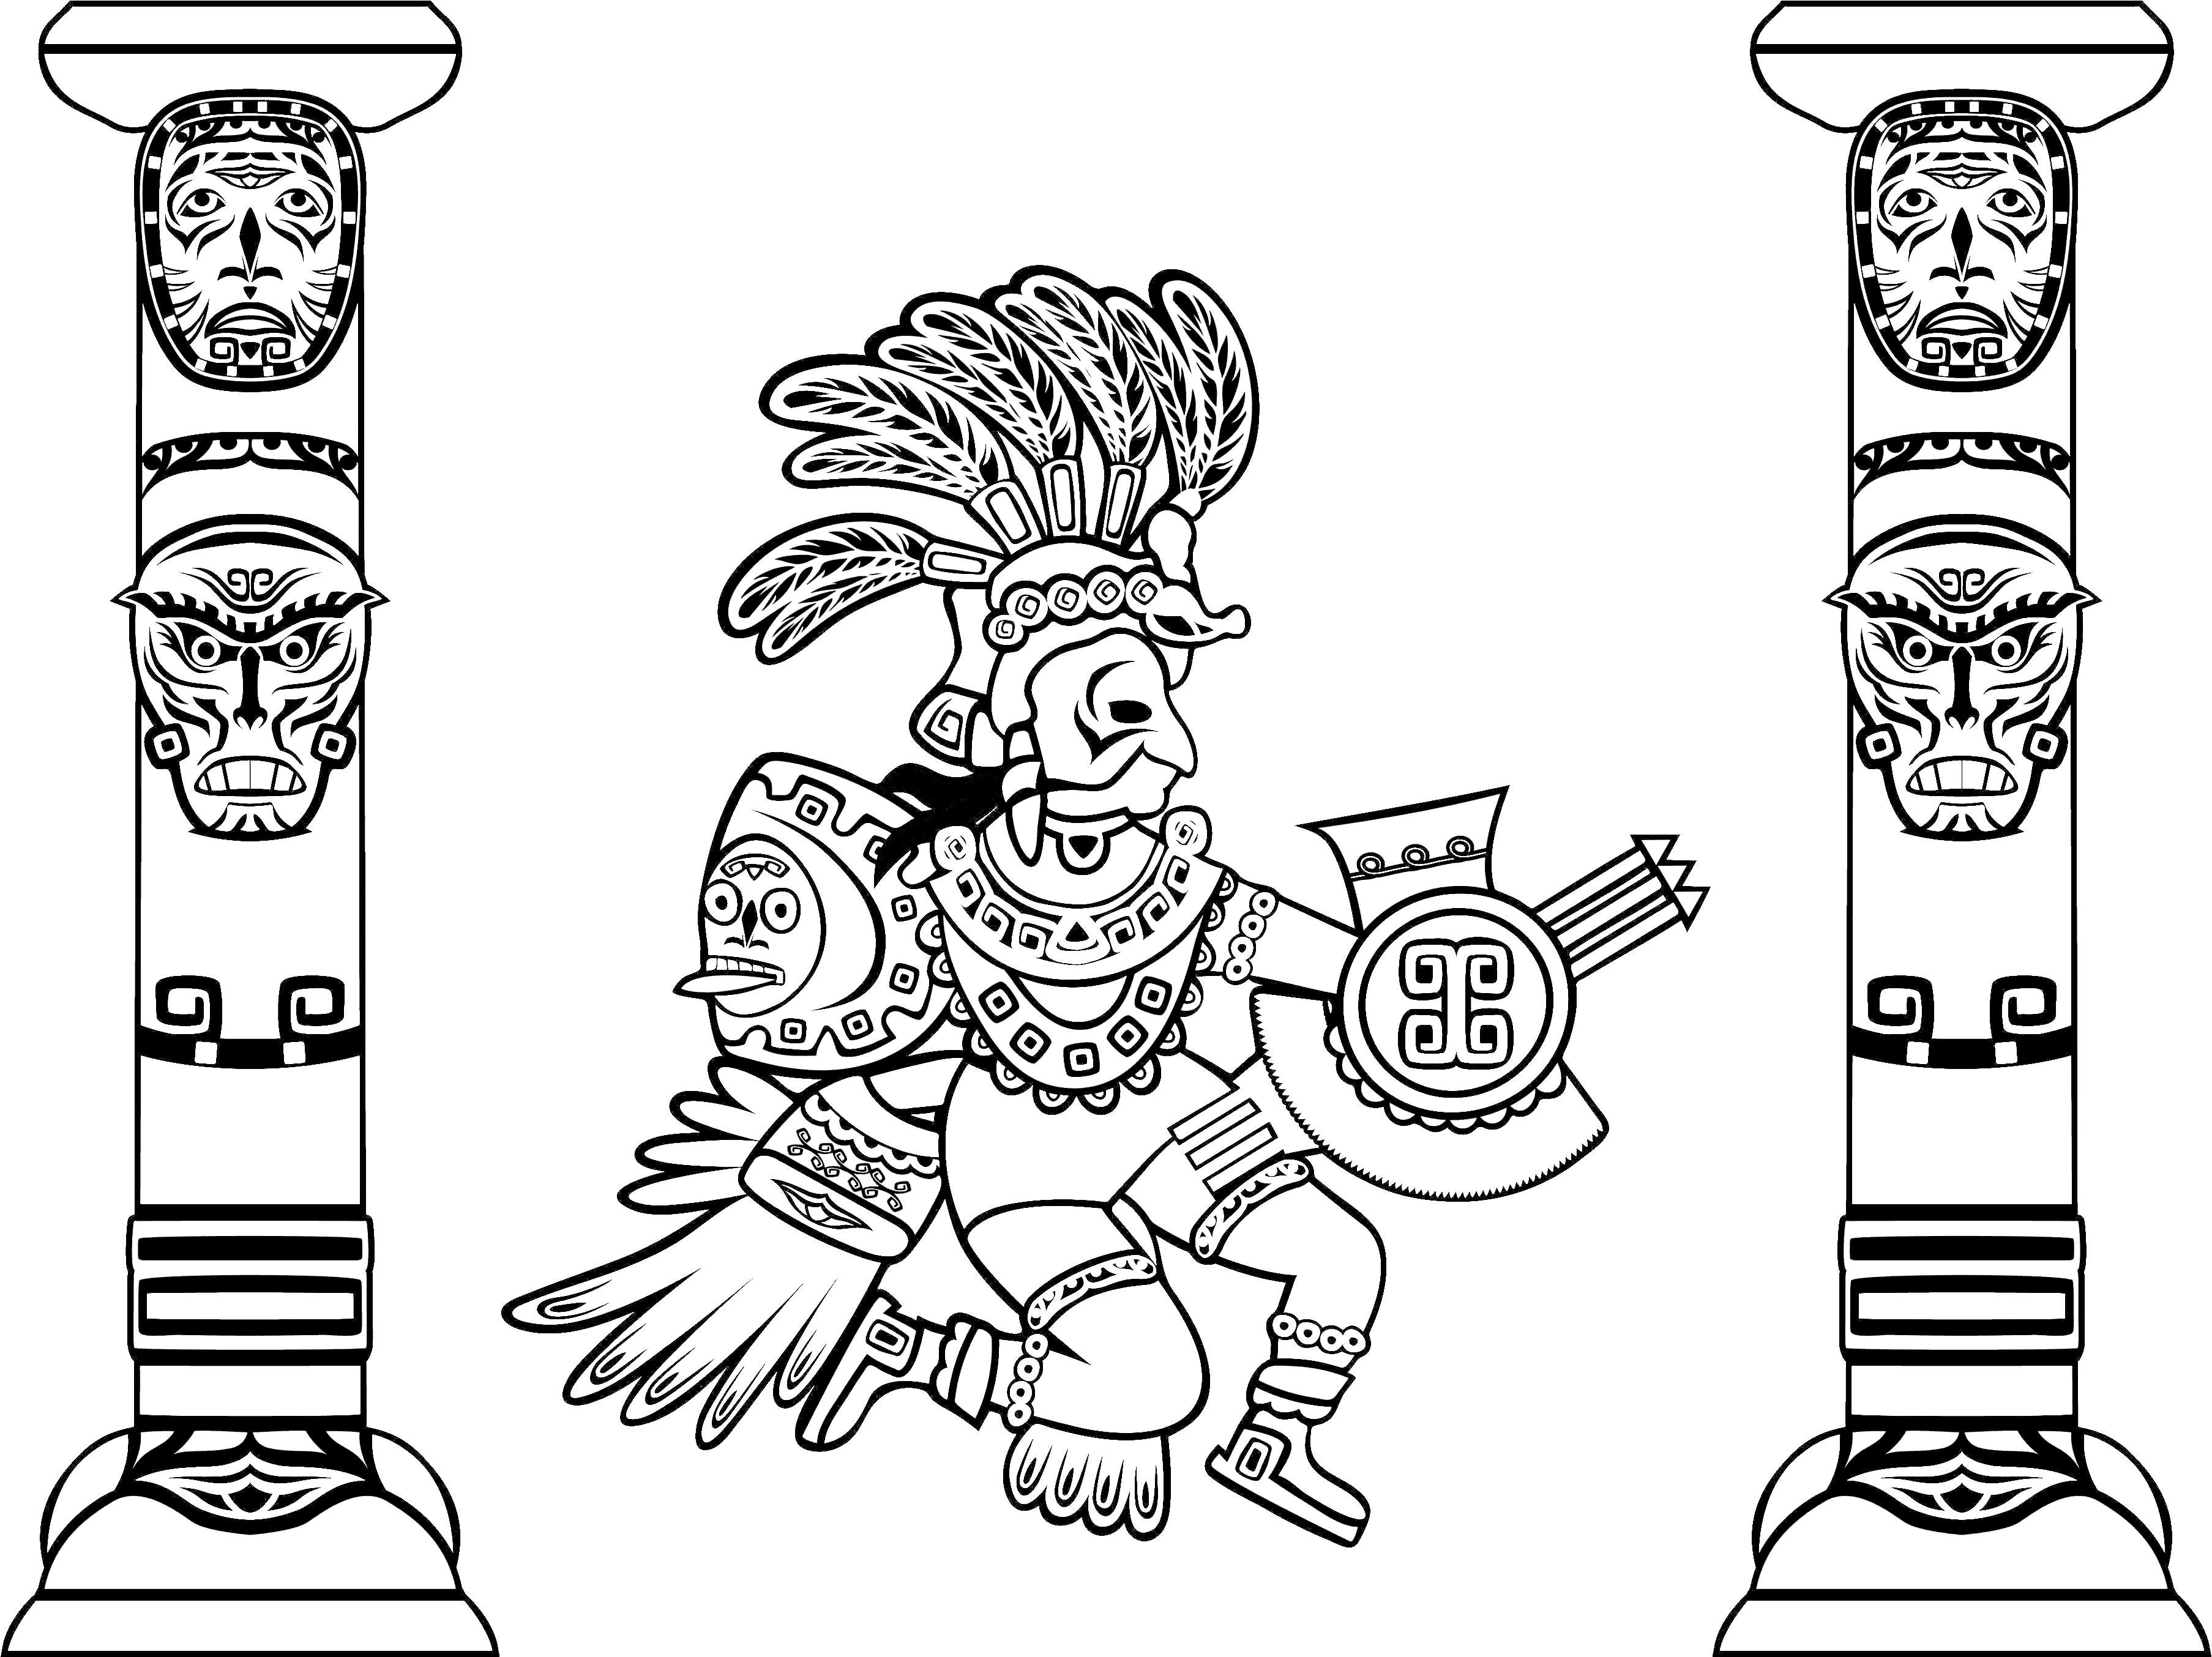 Coloring Adult Quetzalcoatl And Totems Jpg Image Jpeg 3614